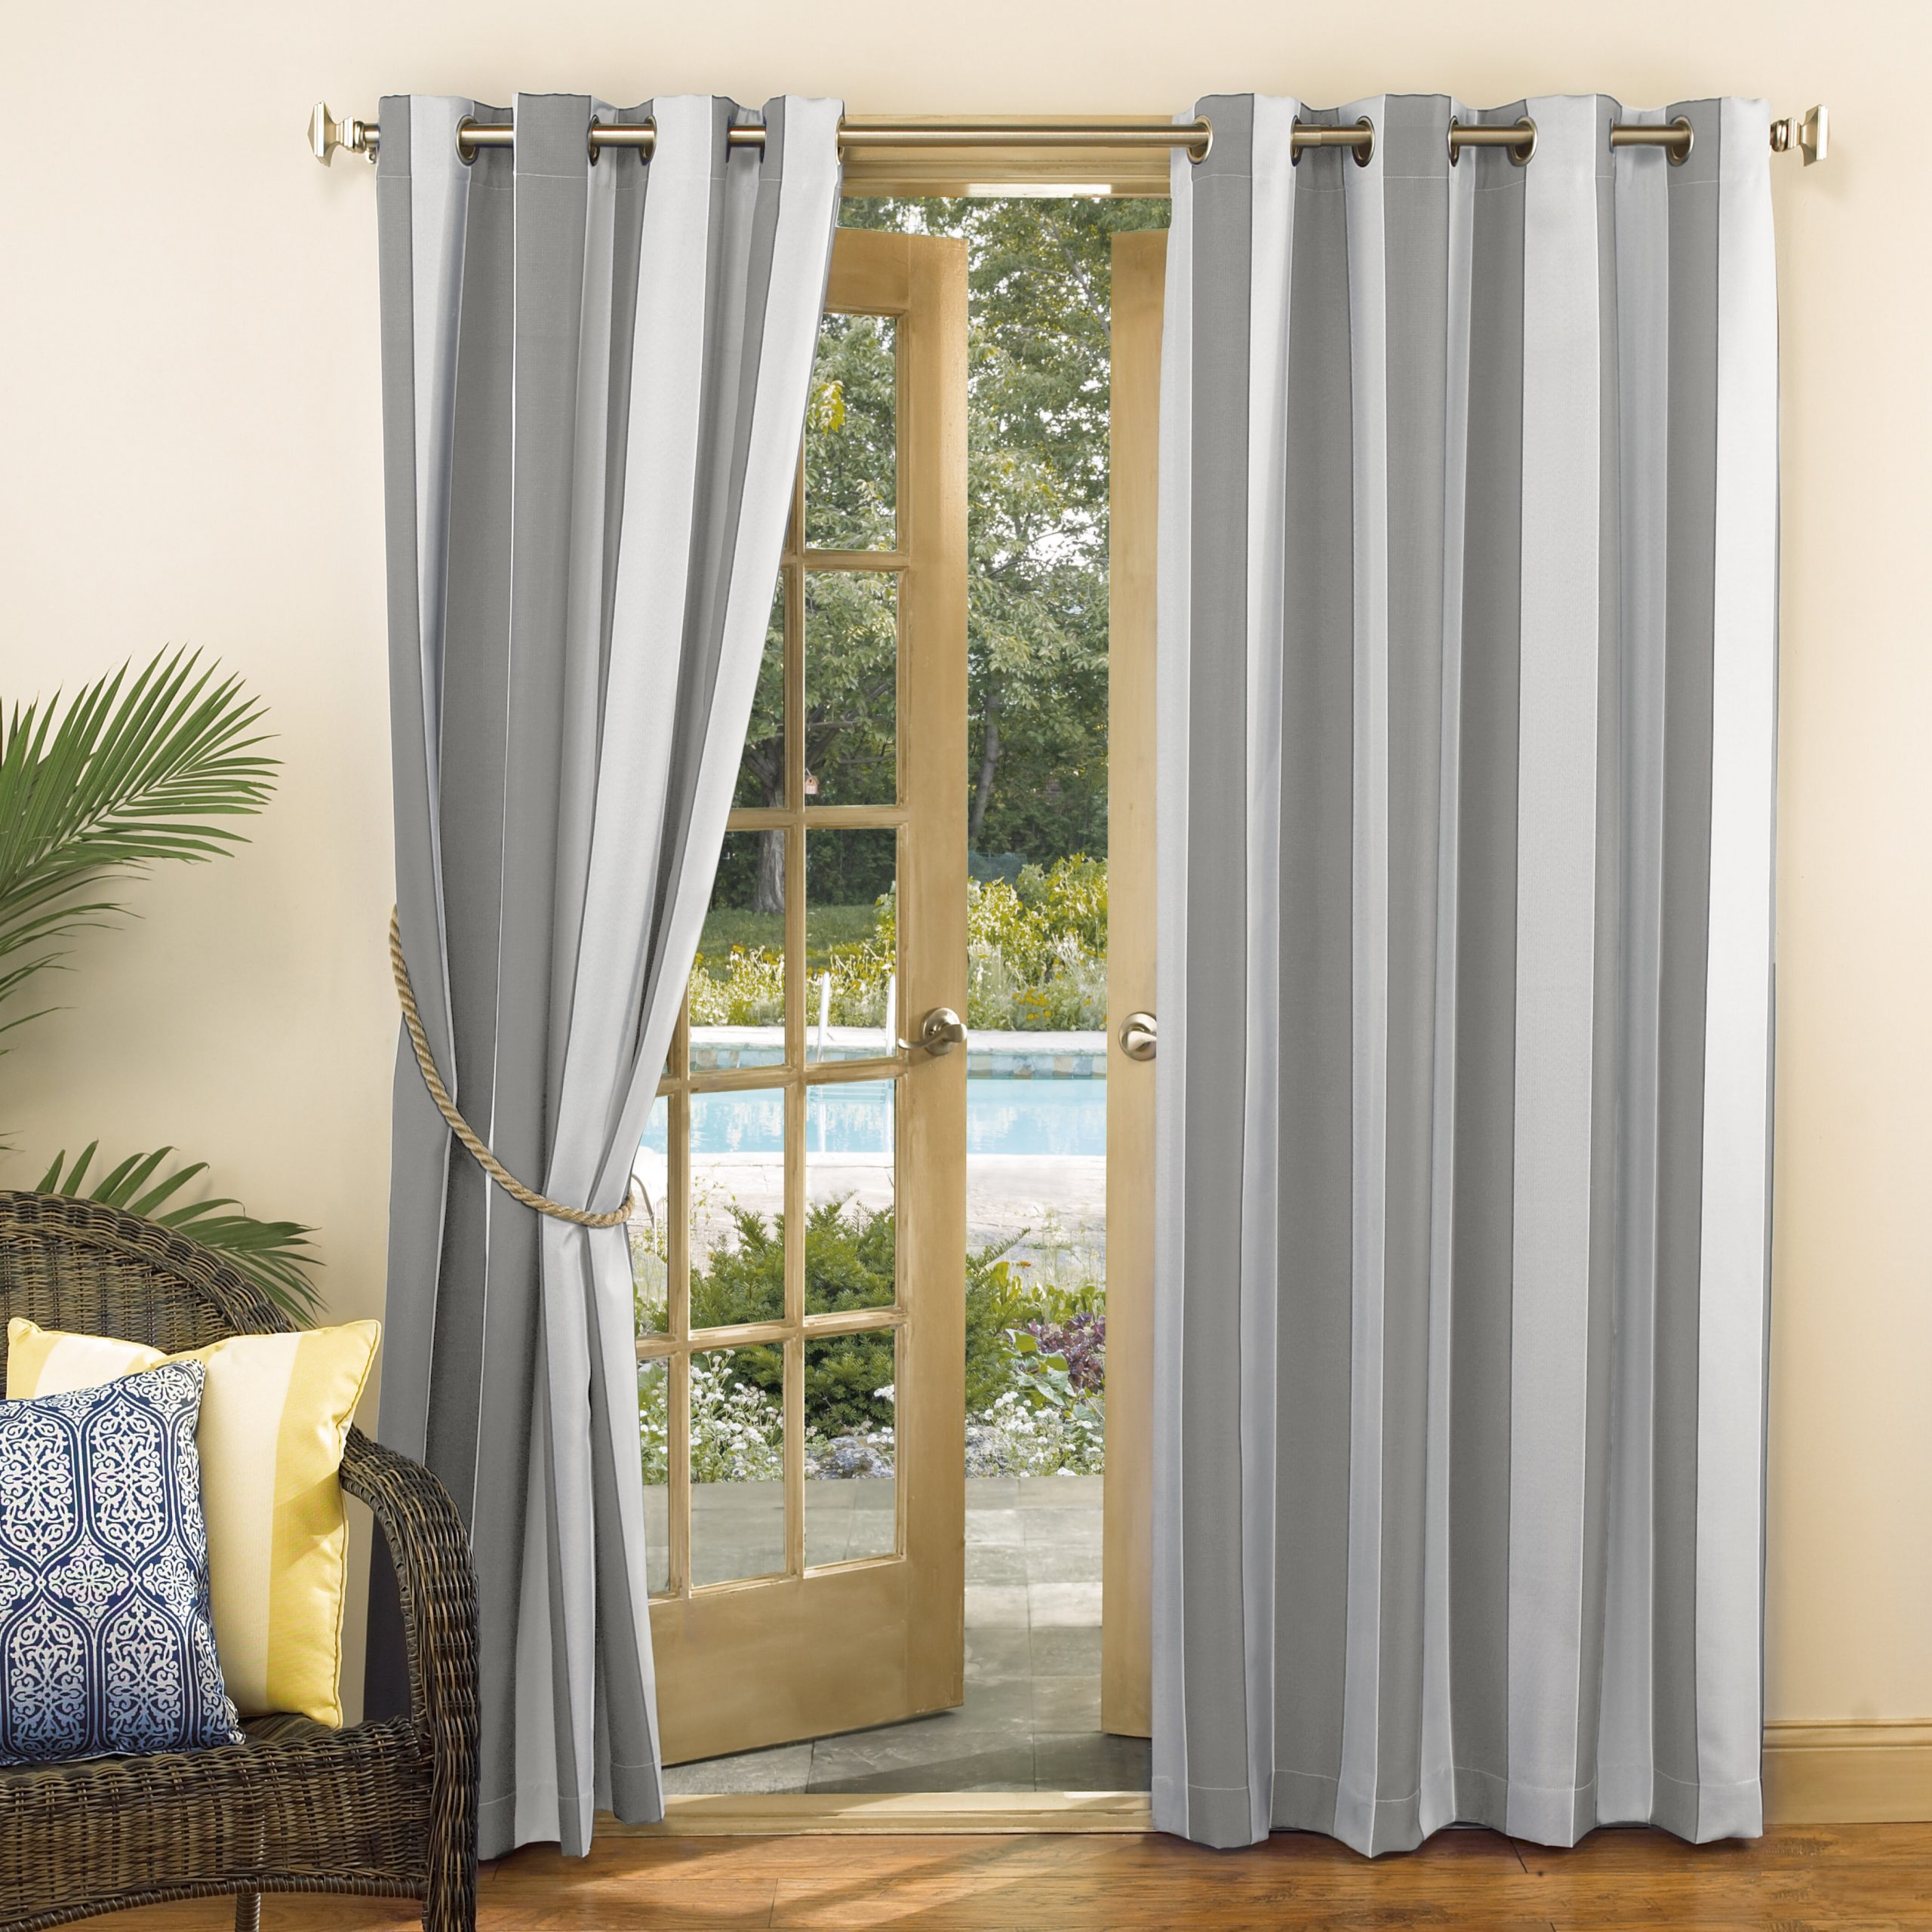 Valencia Cabana Stripe Indoor/outdoor Curtain Panels Within Most Popular Valencia Uv Protectant Cabana Striped Room Darkening Indoor/outdoor Grommet Single Curtain Panel (View 5 of 20)